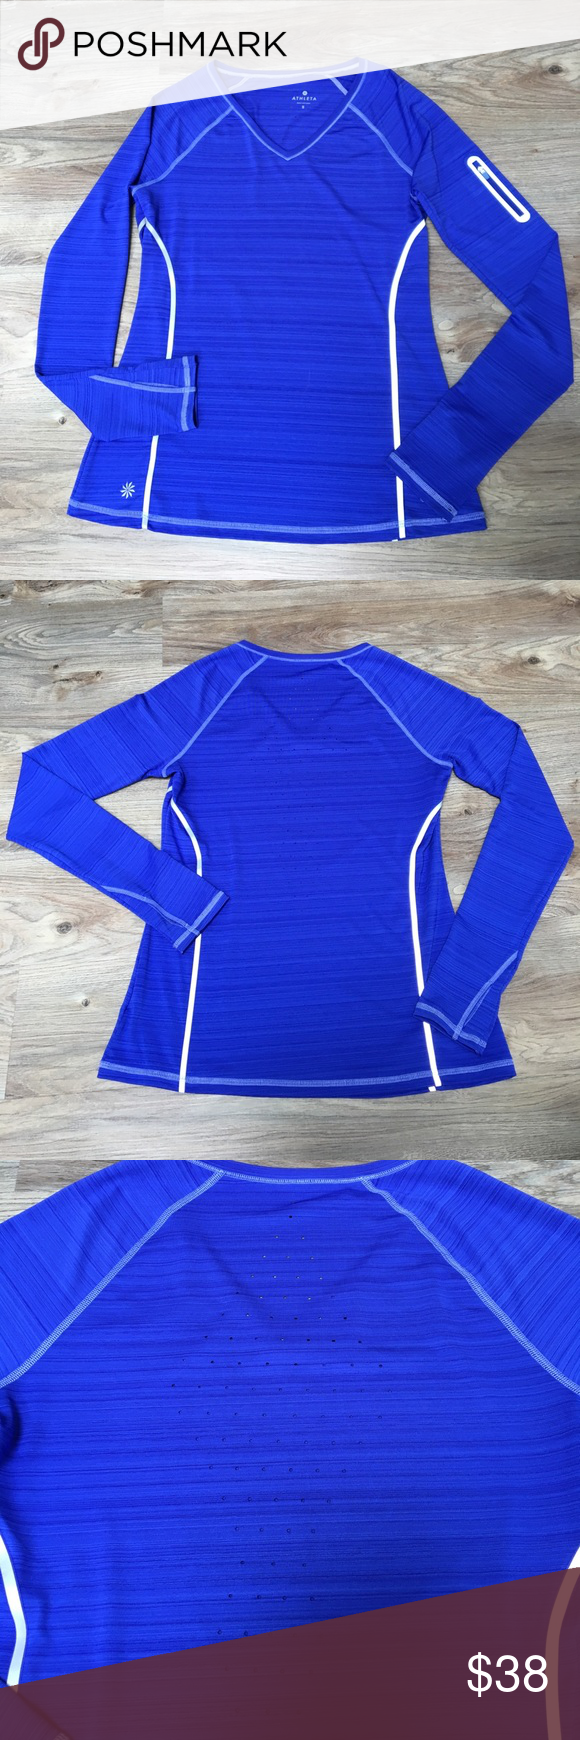 """Athleta Zinger top, Long Sleeve, Small Practically brand new I don't think I ever wore it because I have way too many athletic clothes. Amazing blue/purple. It looks more purple than it does in the pictures. I think the actual color is """"power blue"""" but to me it looks blue/purple. Awesome key pocket on the sleeve and breathable back! Athleta Tops Tees - Long Sleeve"""